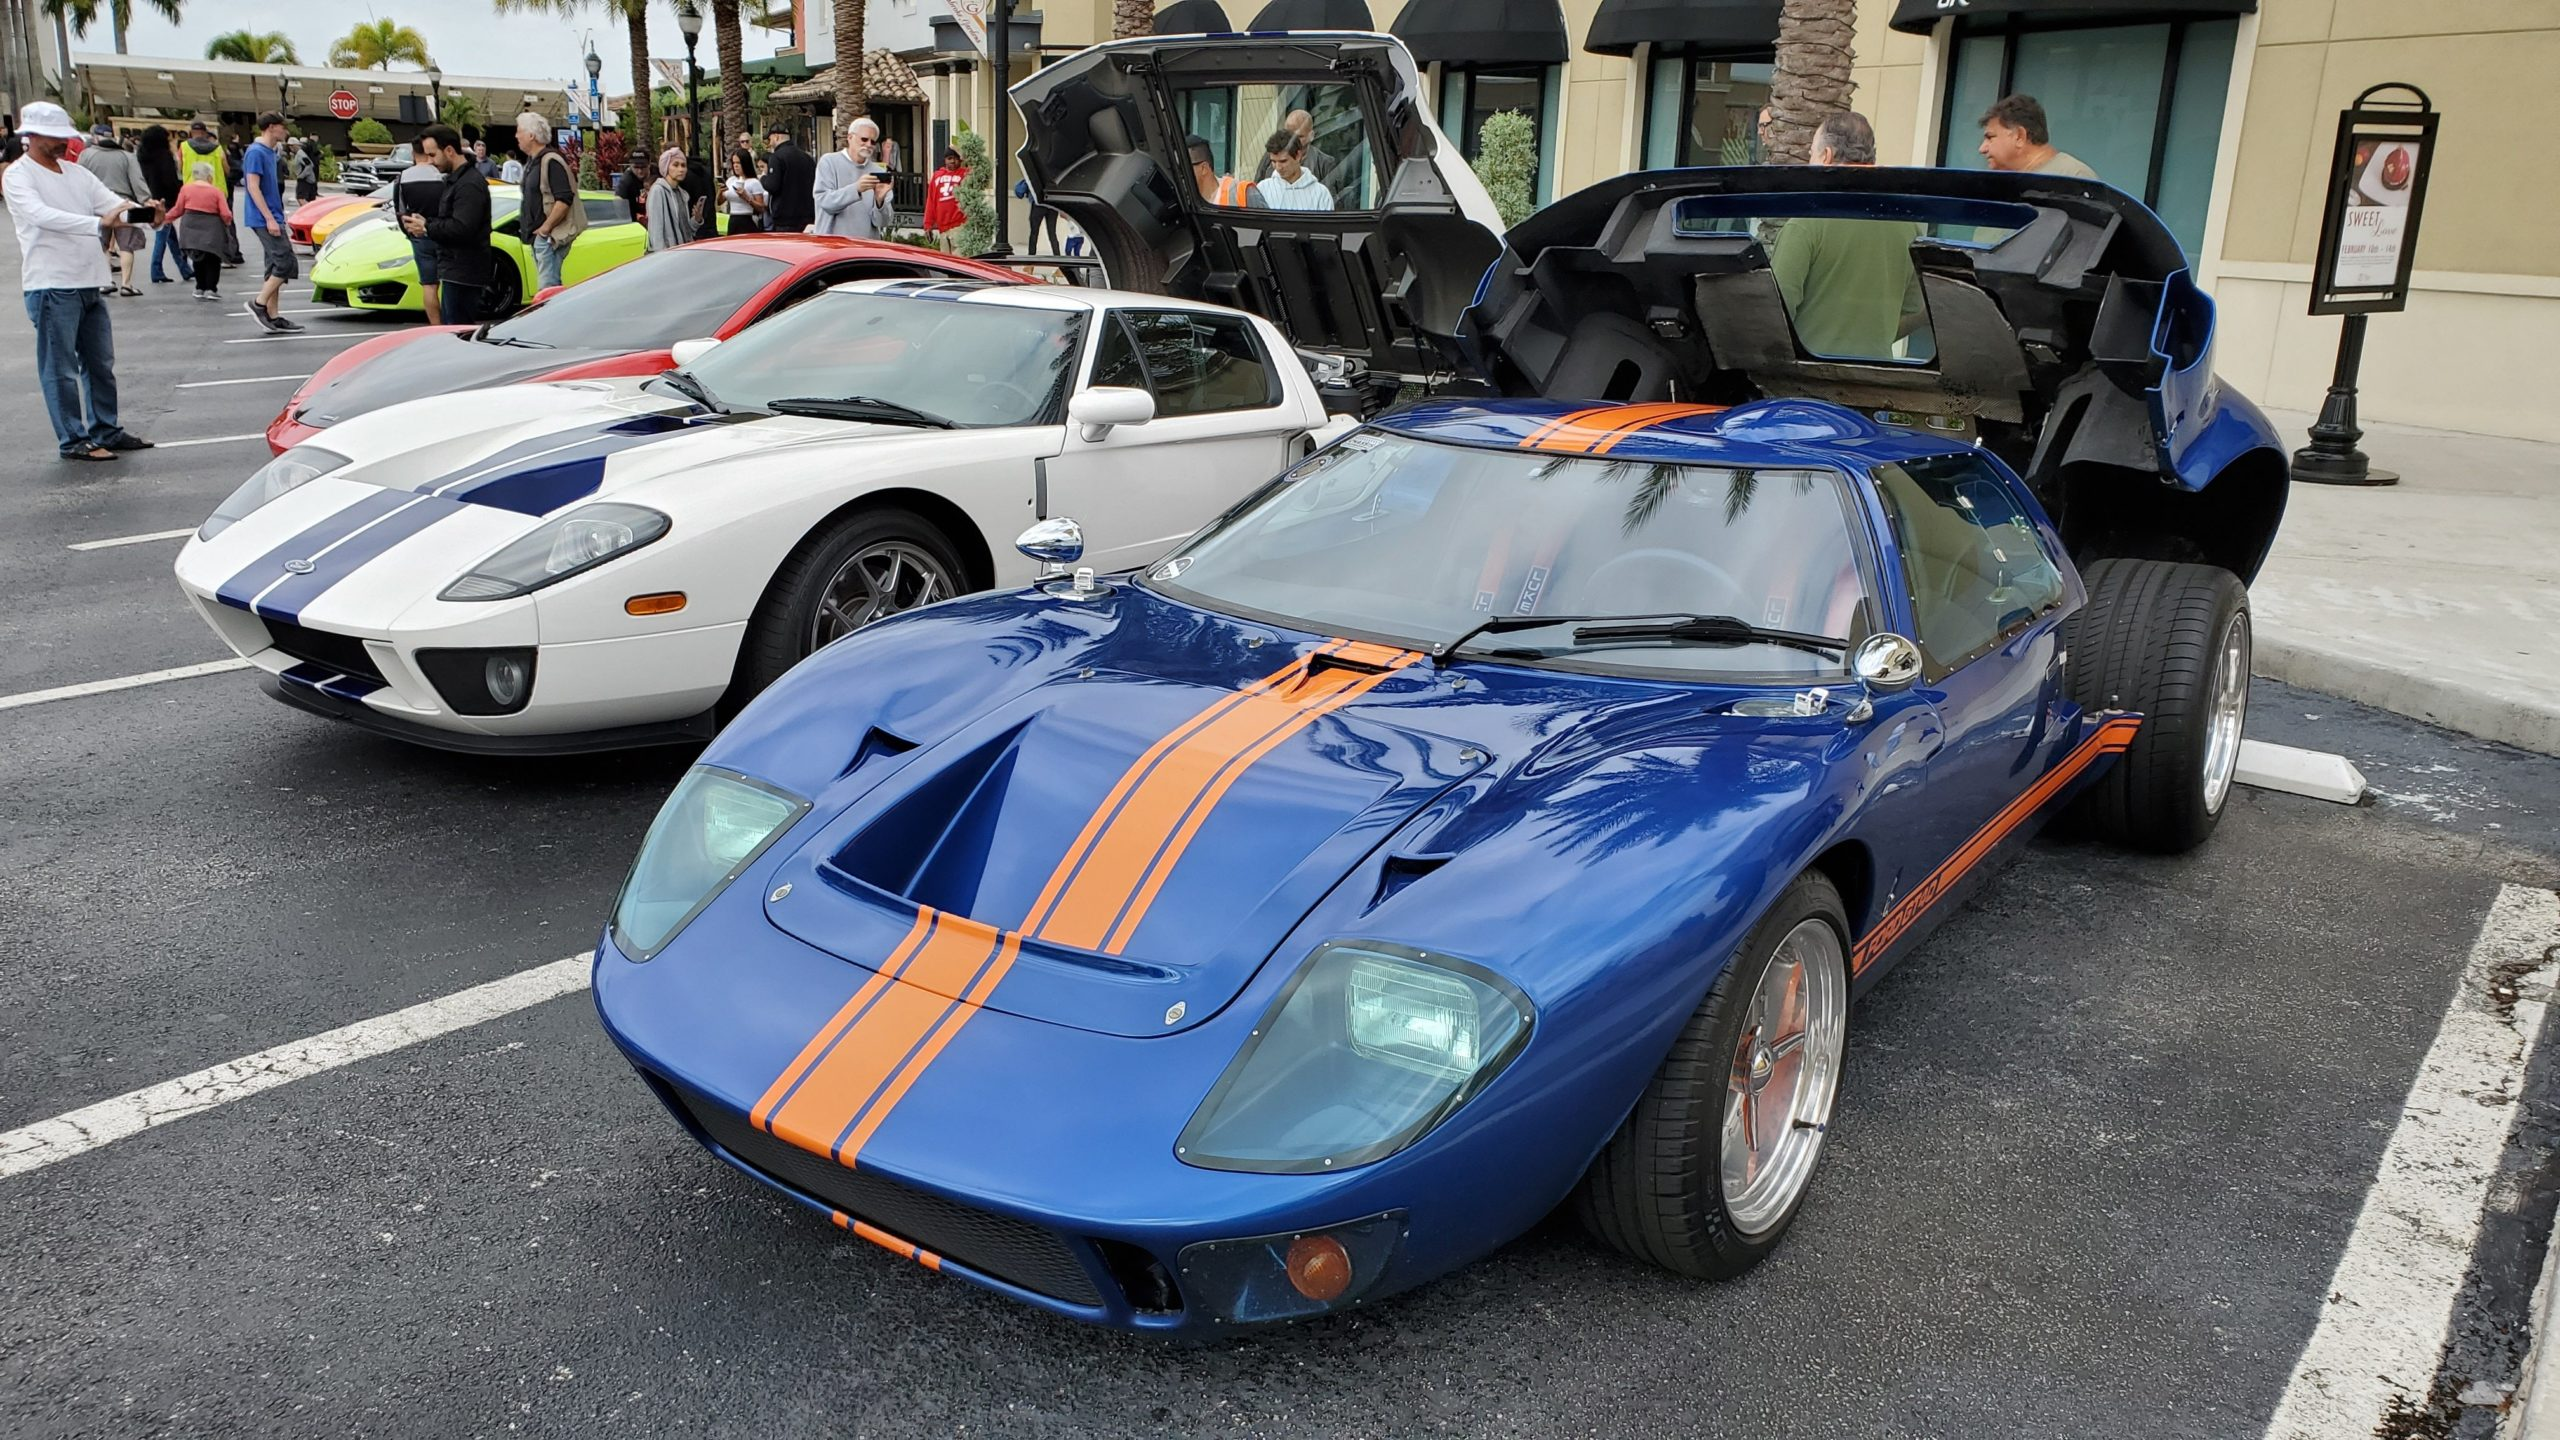 A Ford GT40 next to a Ford GT. It's wild how short the GT40 is